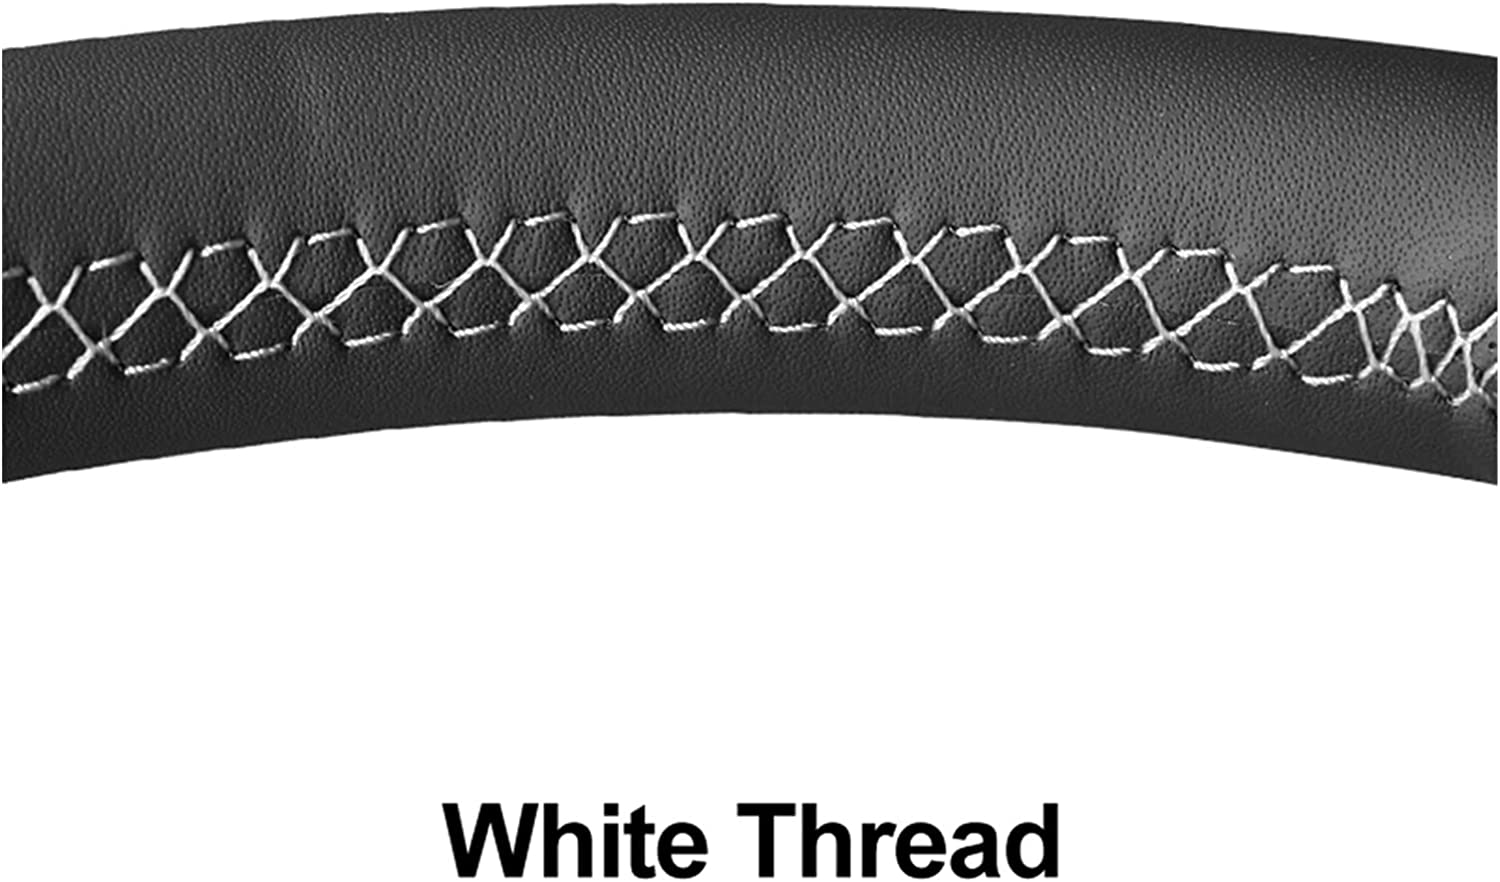 Please 2021 new Blink Hand Sewing Black Wh Popularity Steering PU Leather Artificial